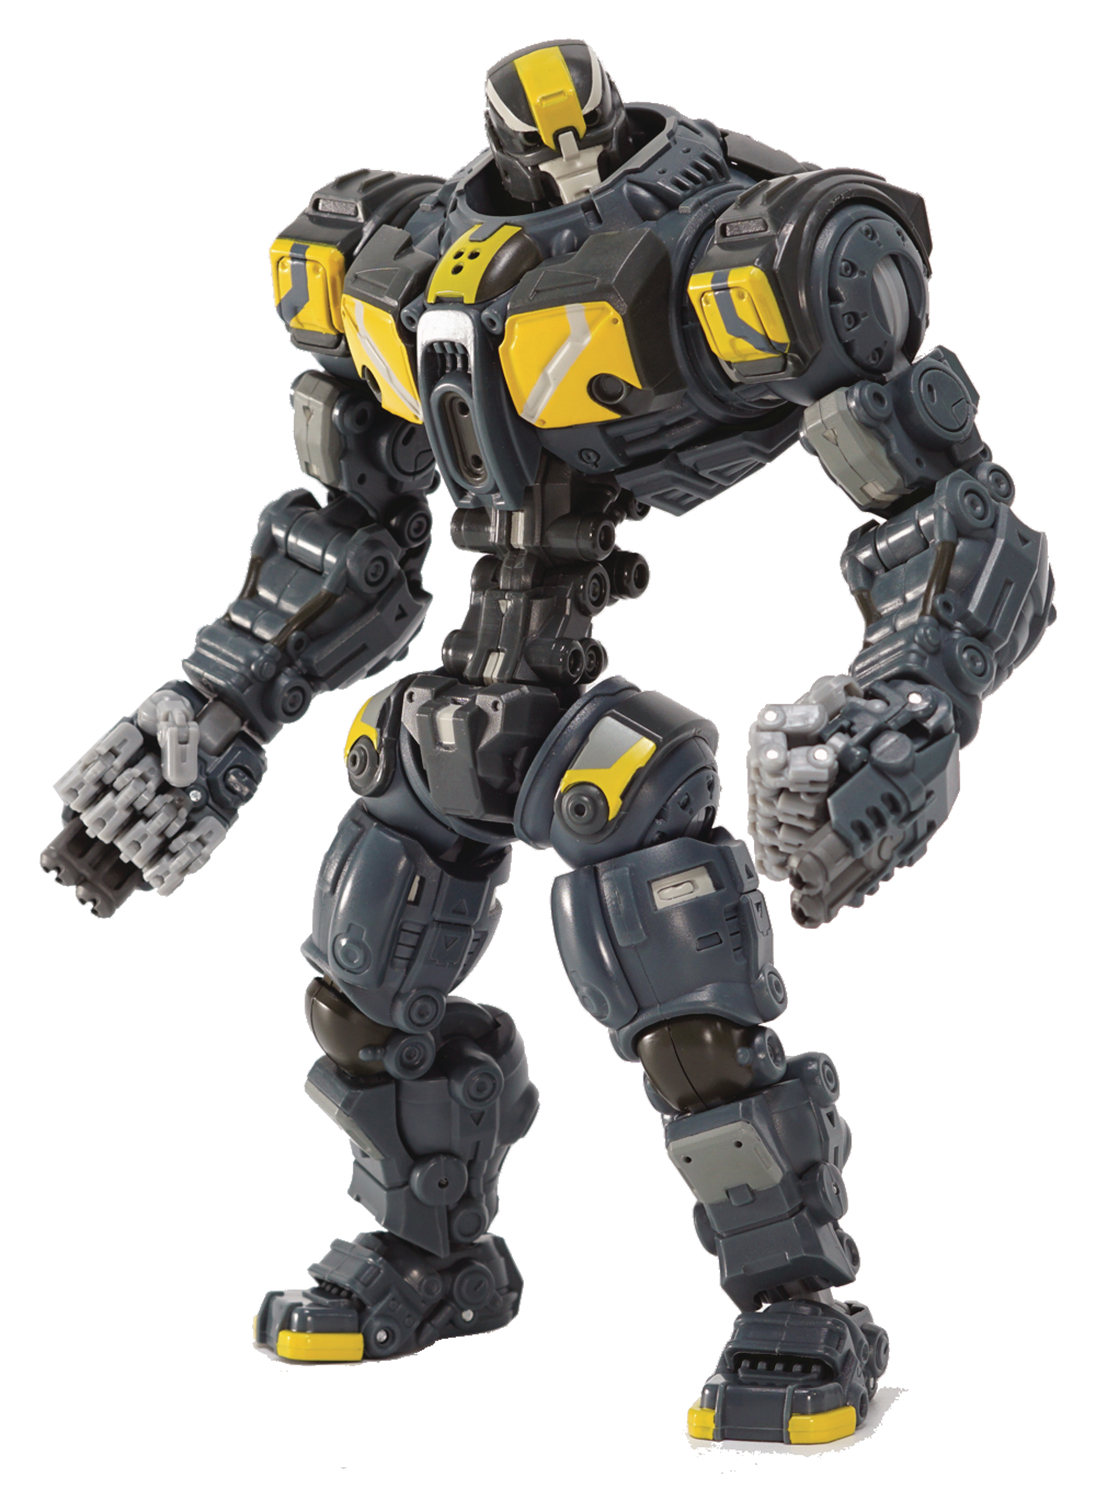 ASTROBOTS ARGUS ACTION FIGURE